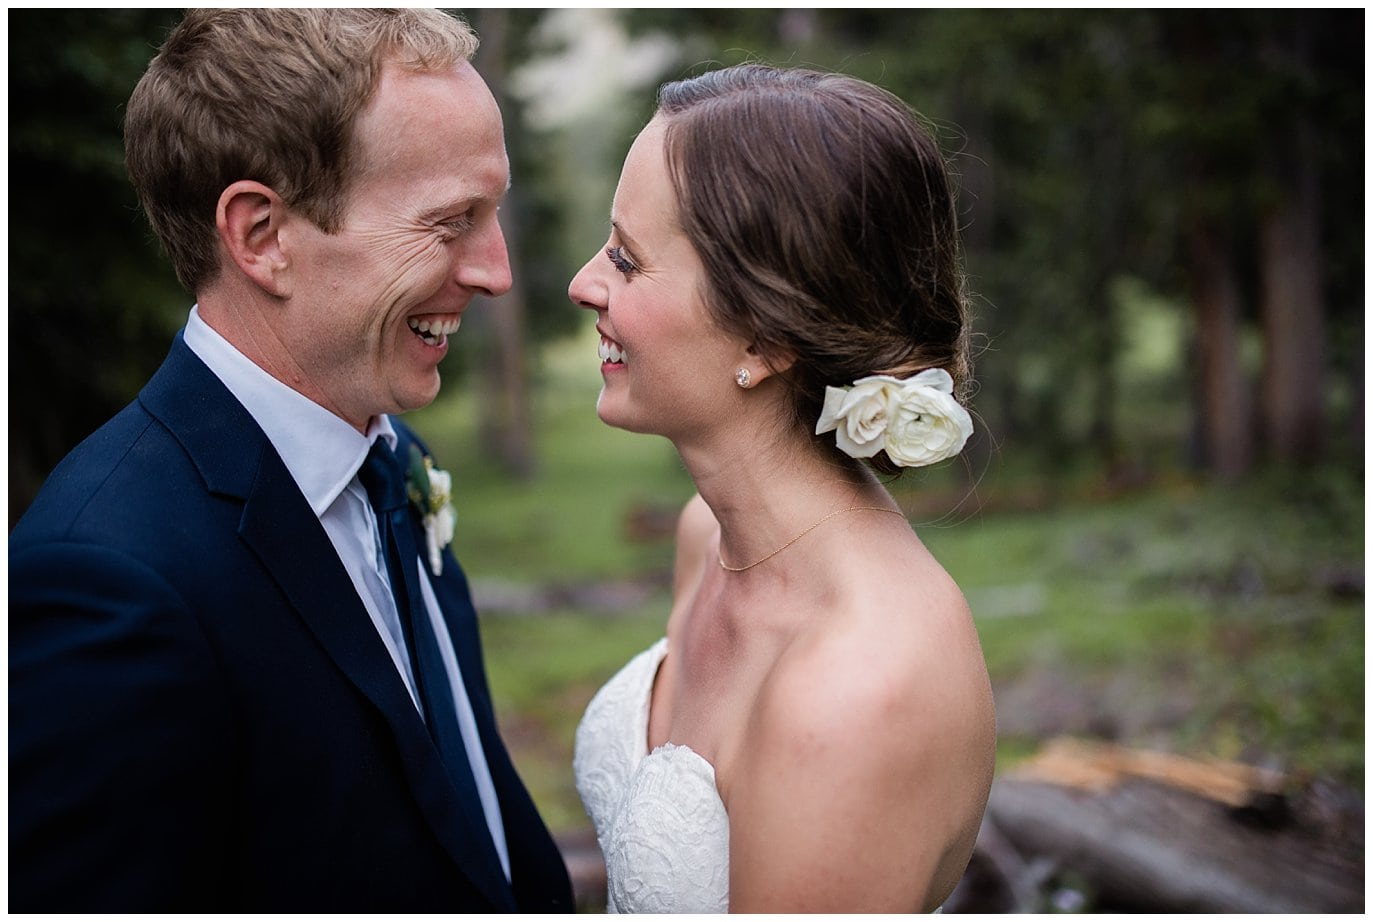 white flowers in bride's hair at Arapahoe Basin Black Mountain Lodge Wedding by Colorado Wedding Photographer Jennie Crate